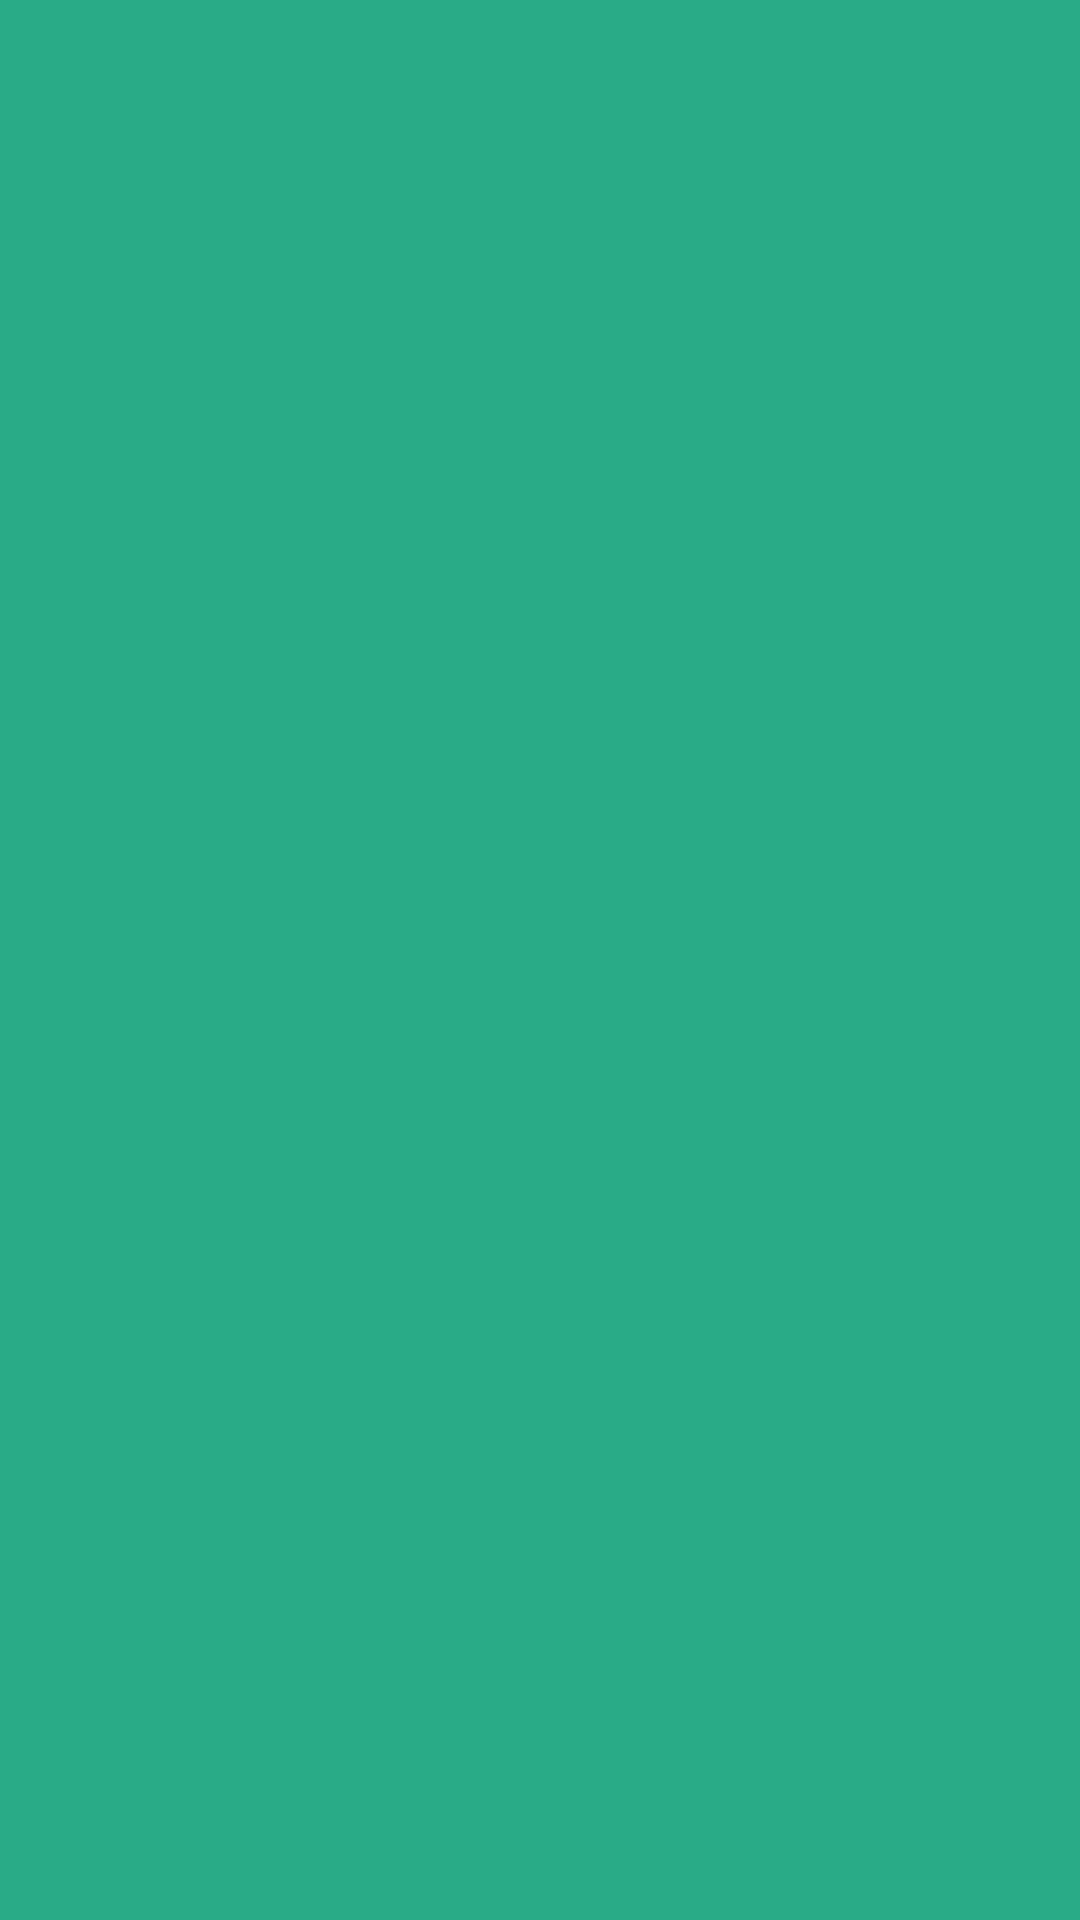 1080x1920 Jungle Green Solid Color Background